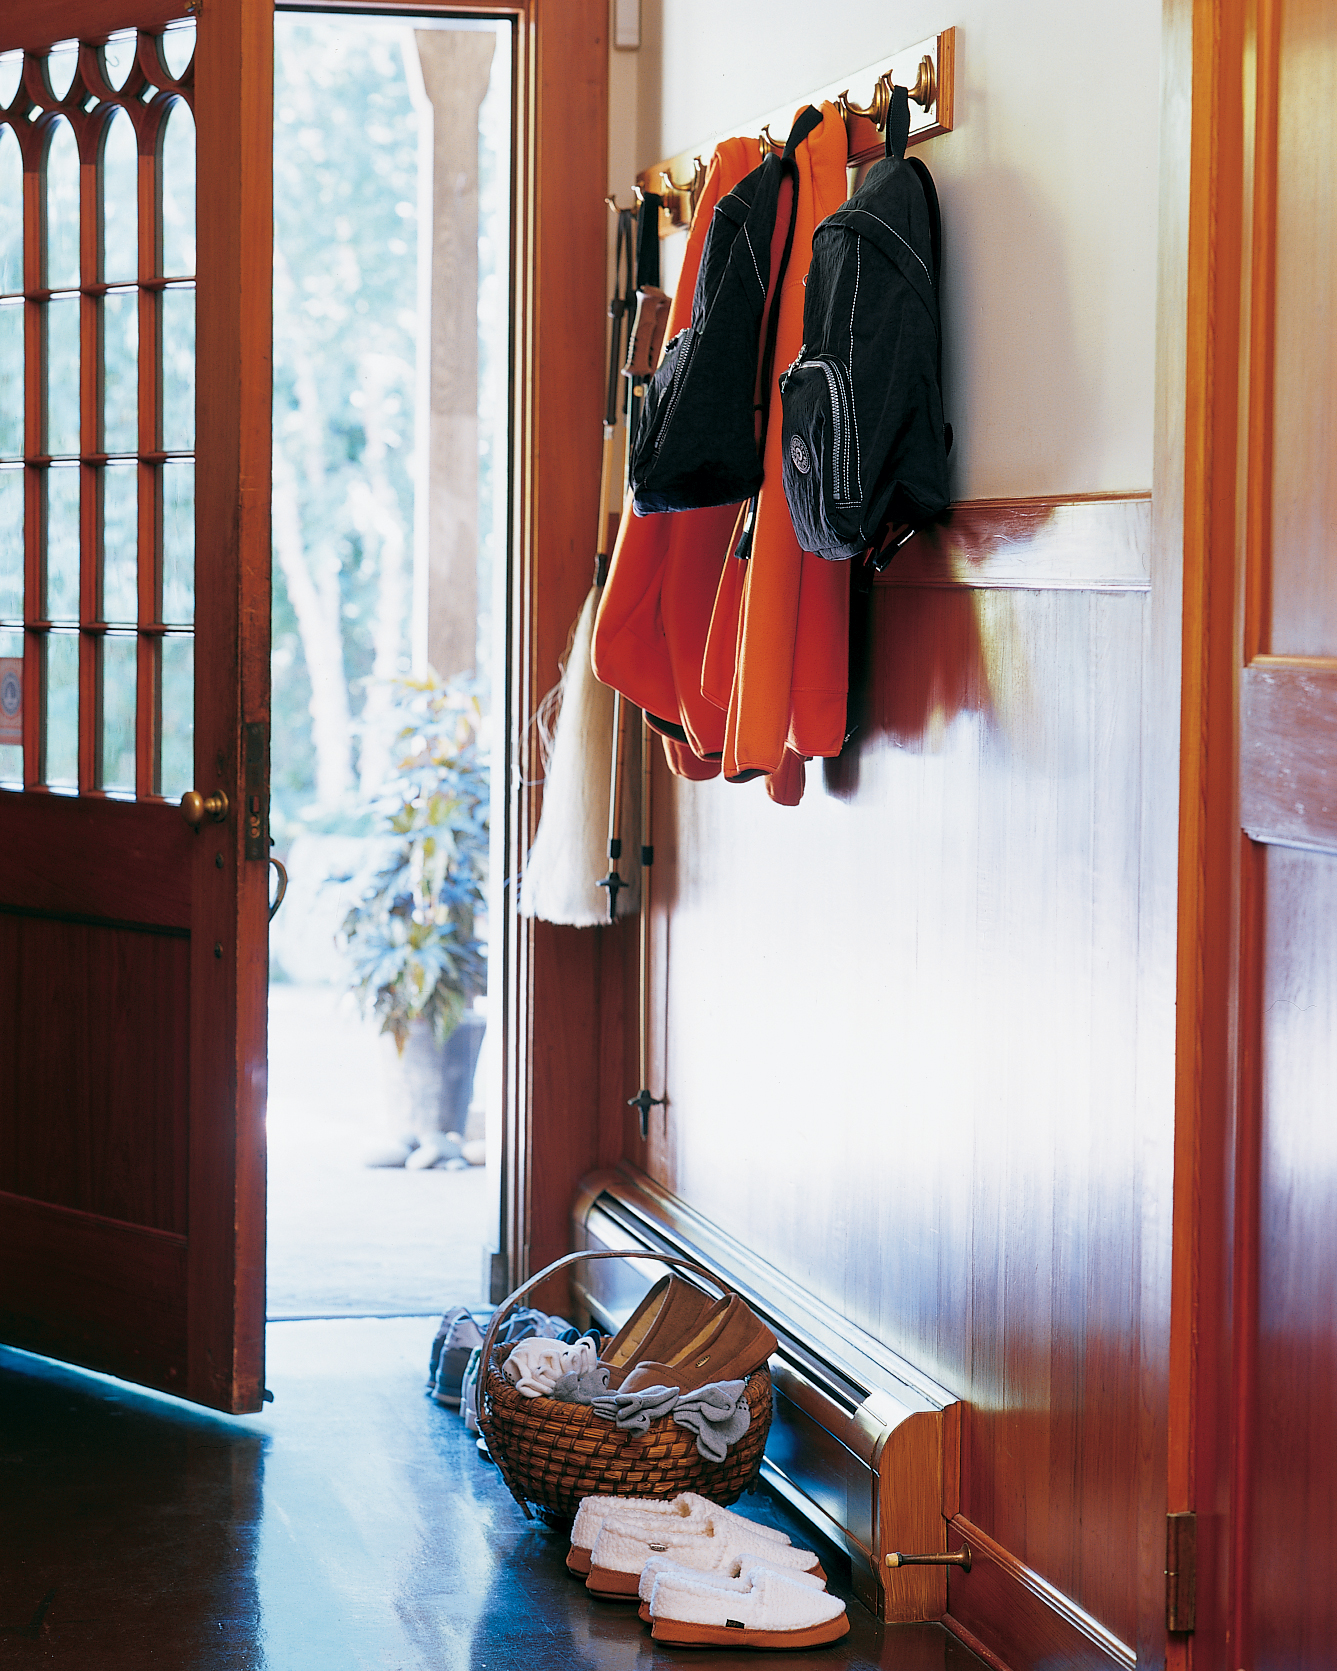 Martha's Homes: Her Organizing Solutions